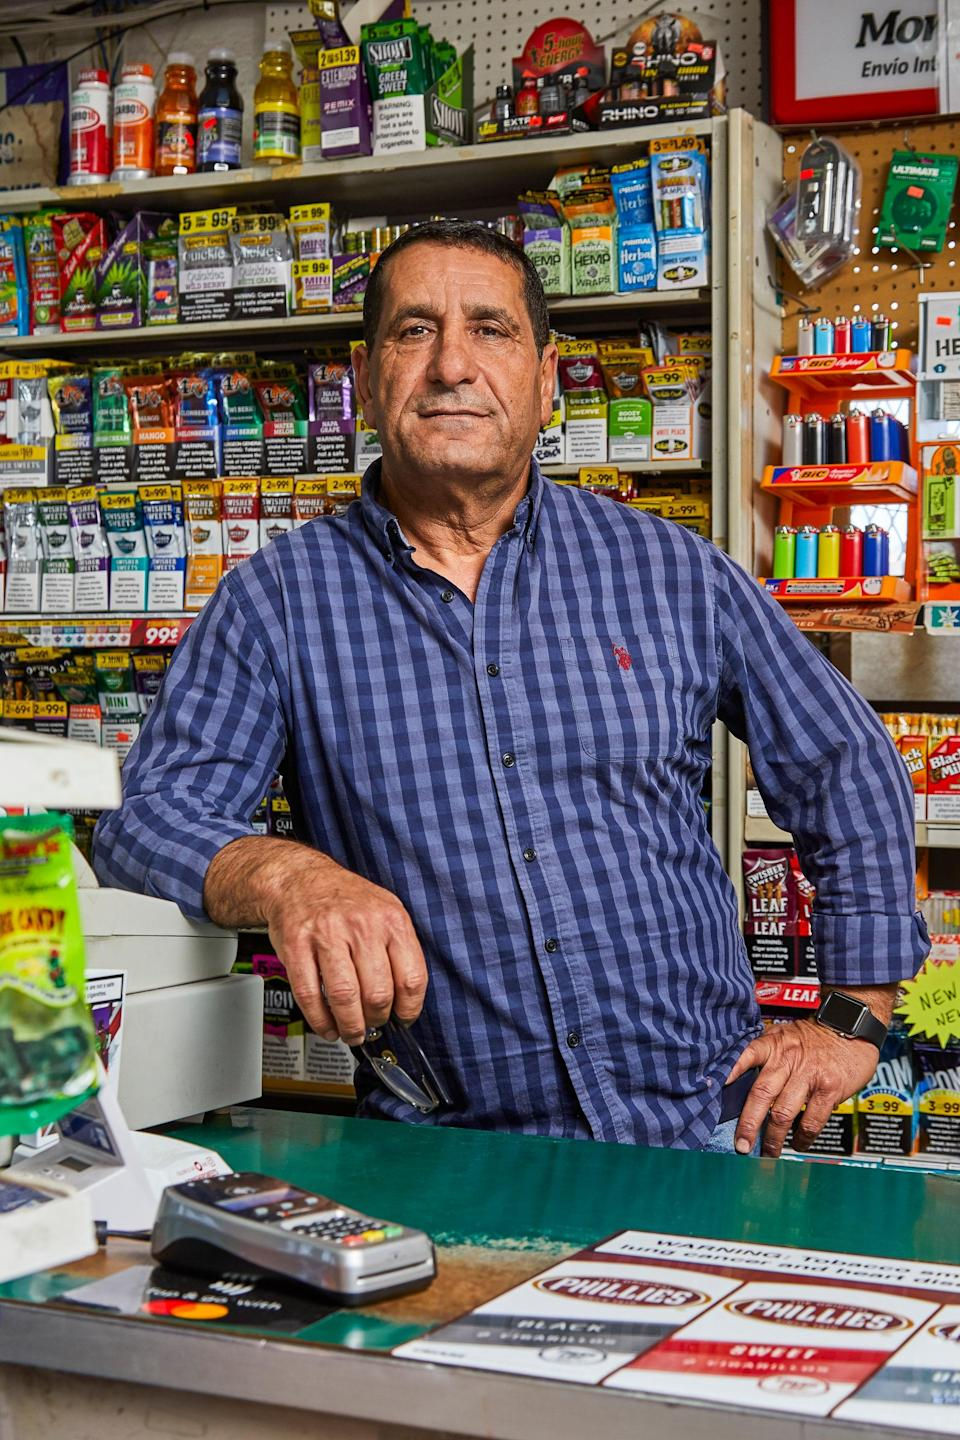 "<div class=""caption""> Ismail Ismail, owner of Highland Food Mart in San Antonio, TX </div> <cite class=""credit"">Photo by Hayden Spears</cite>"